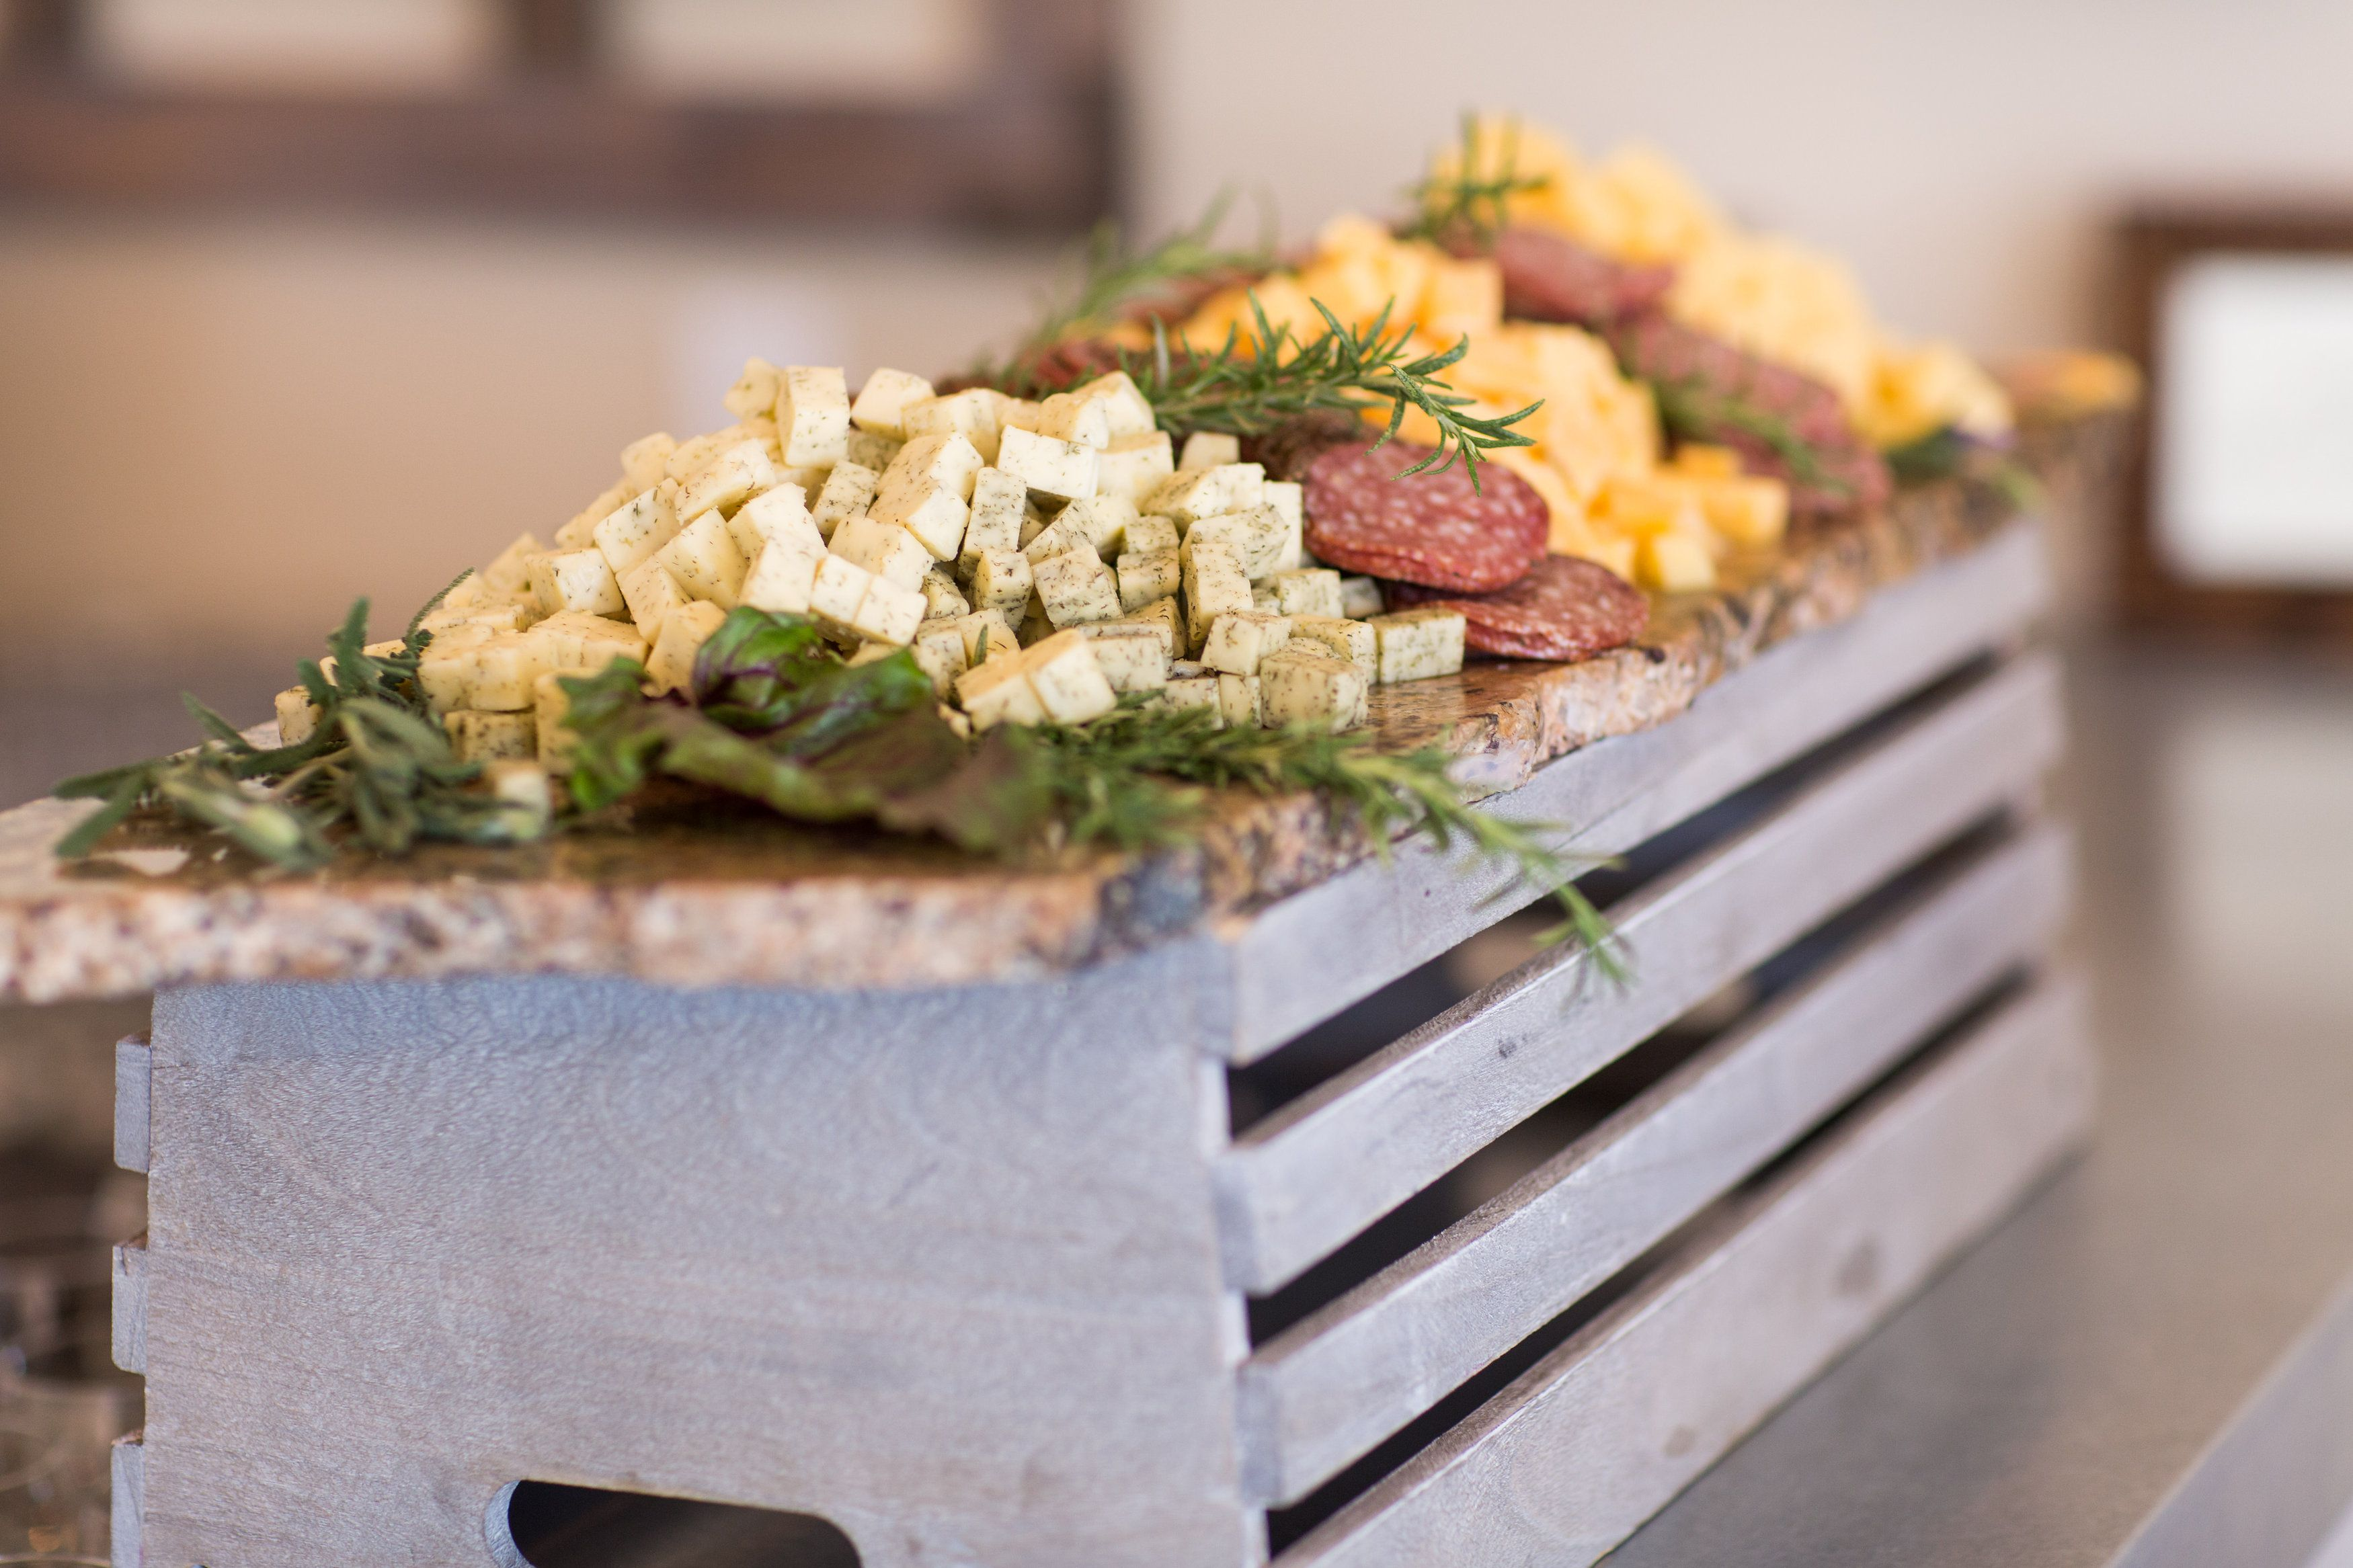 Jessica Sean San Luis Obispo Ca Field To Table Catering Meats - Field to table catering